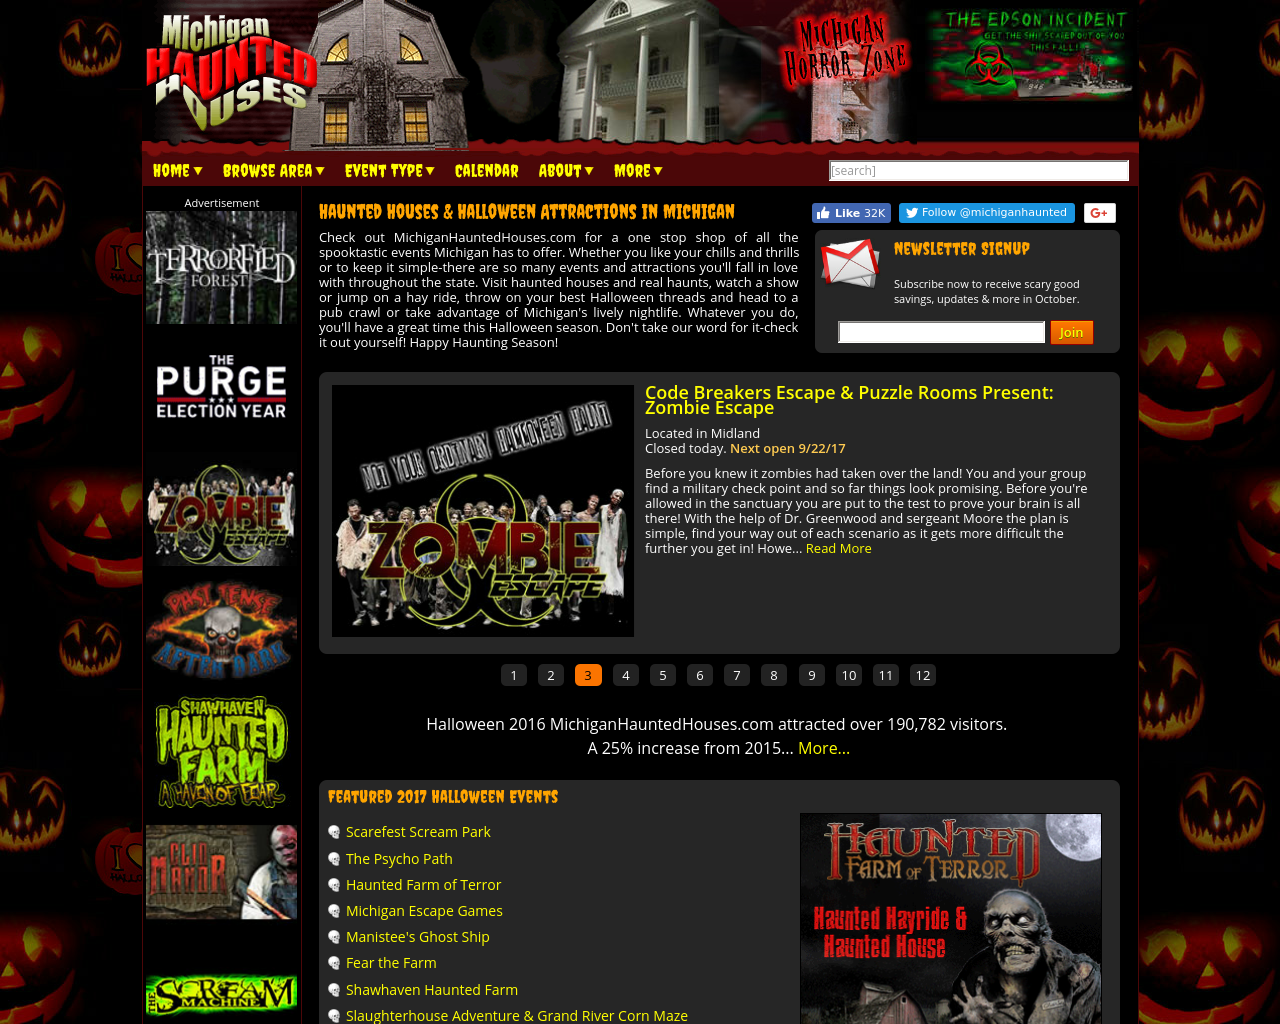 Michigan-Haunted-Houses-Advertising-Reviews-Pricing